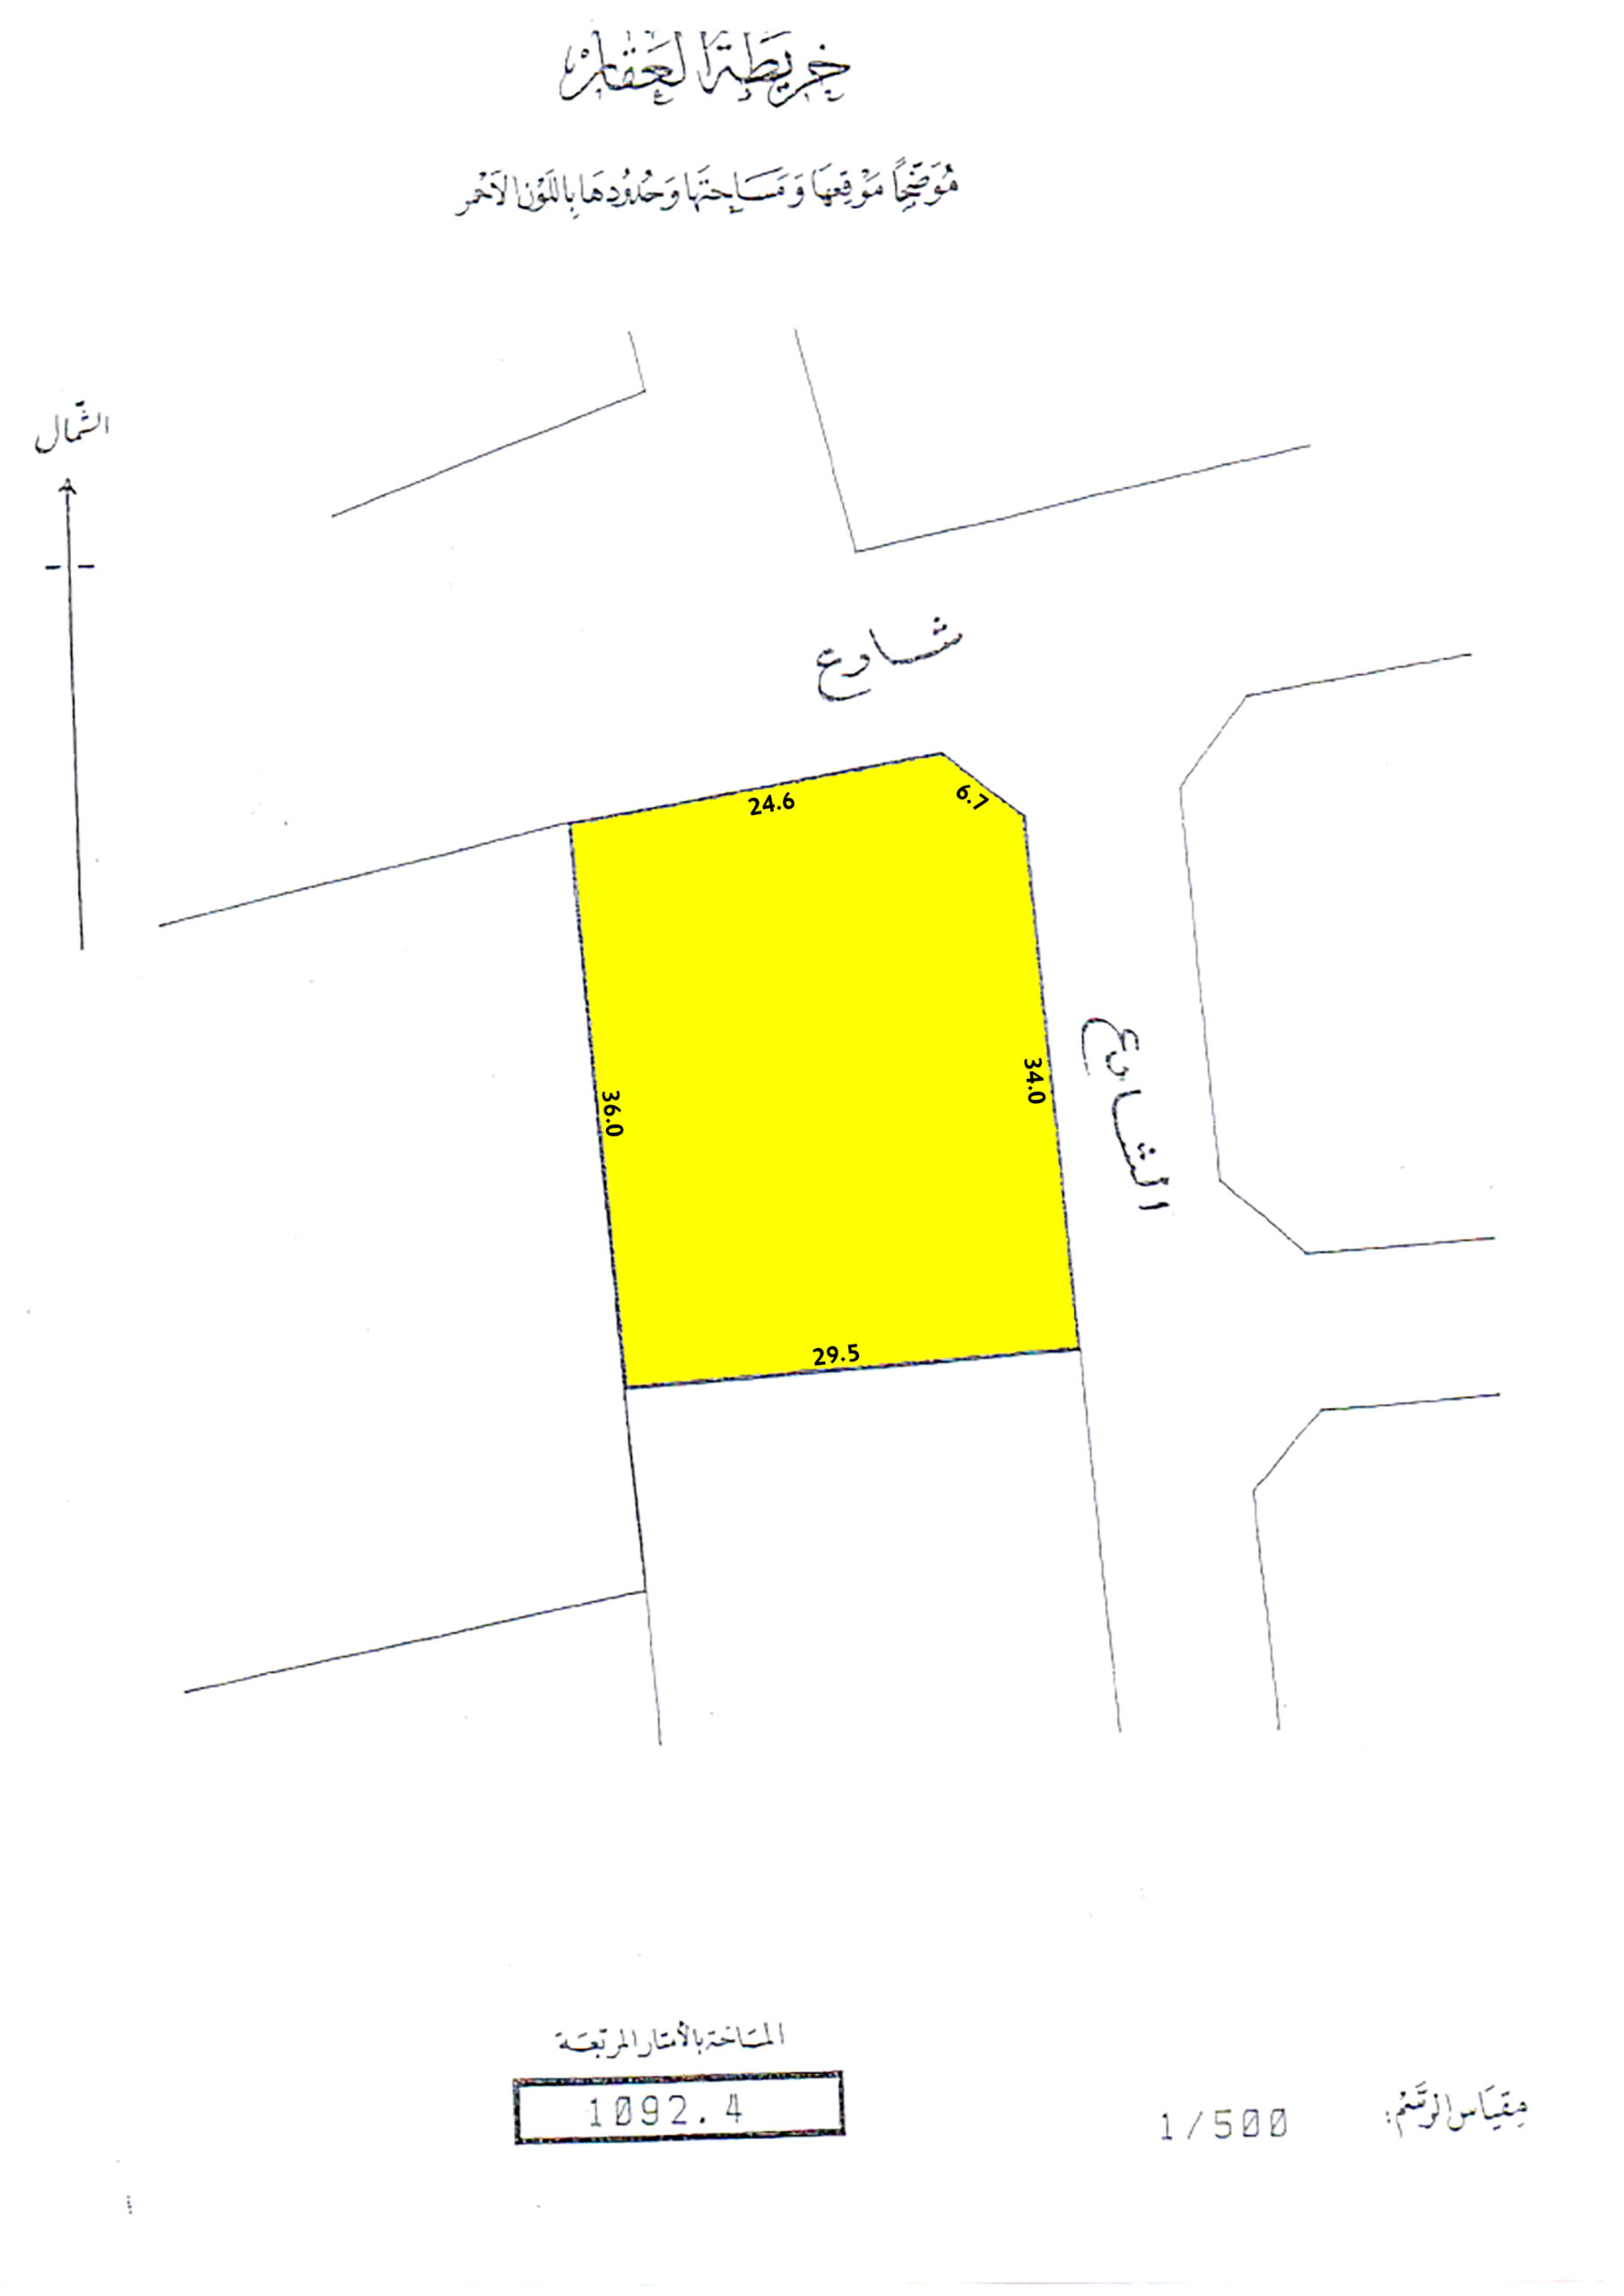 Land for sale in Northern Sehla with total area of 1092.40 sqm and it can be divided